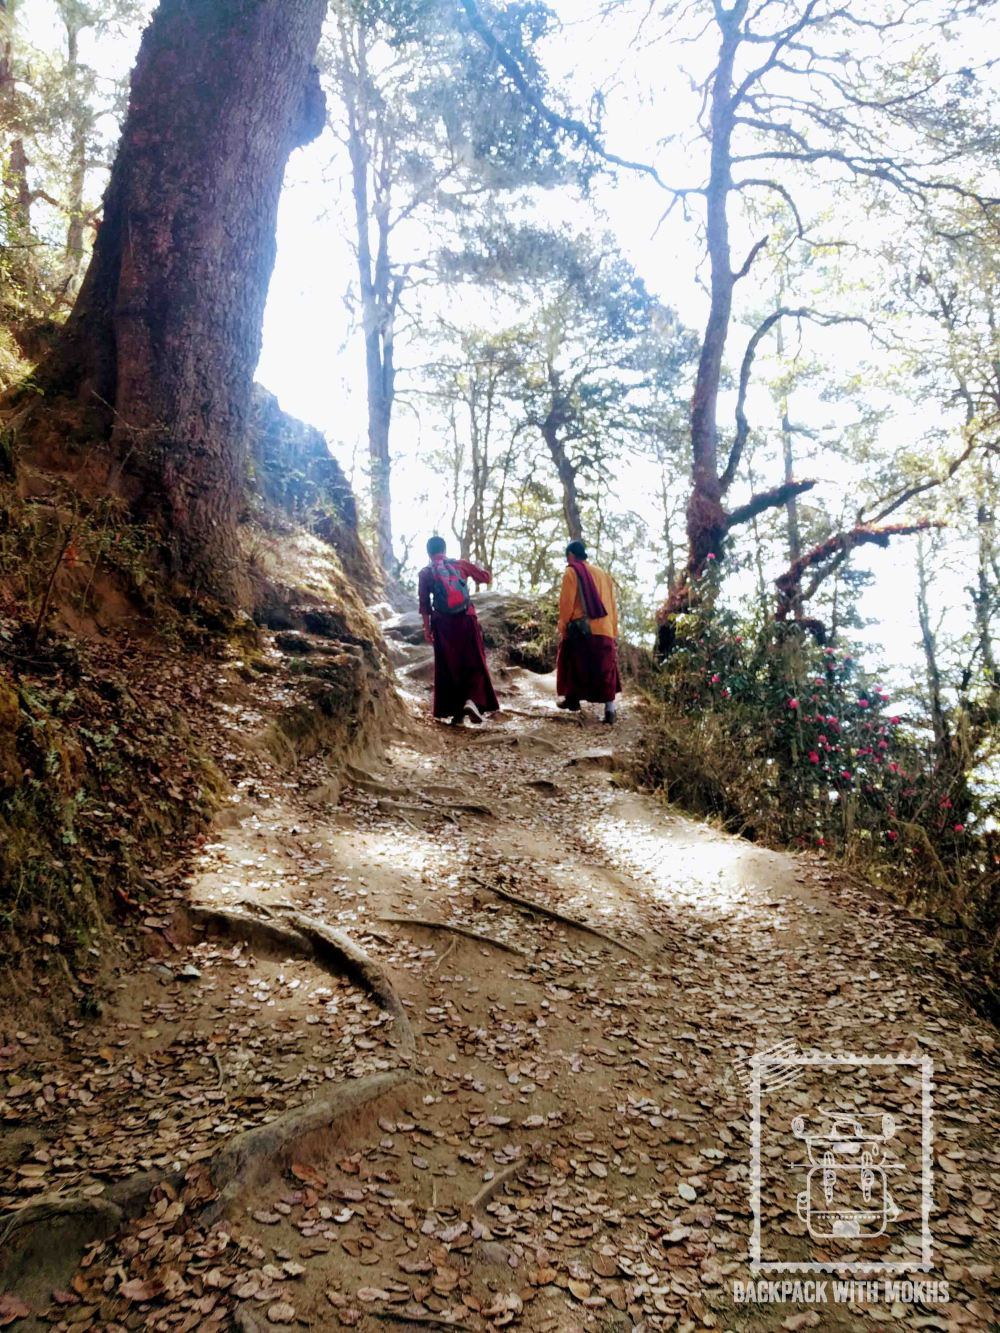 Monks on their pilgrimage